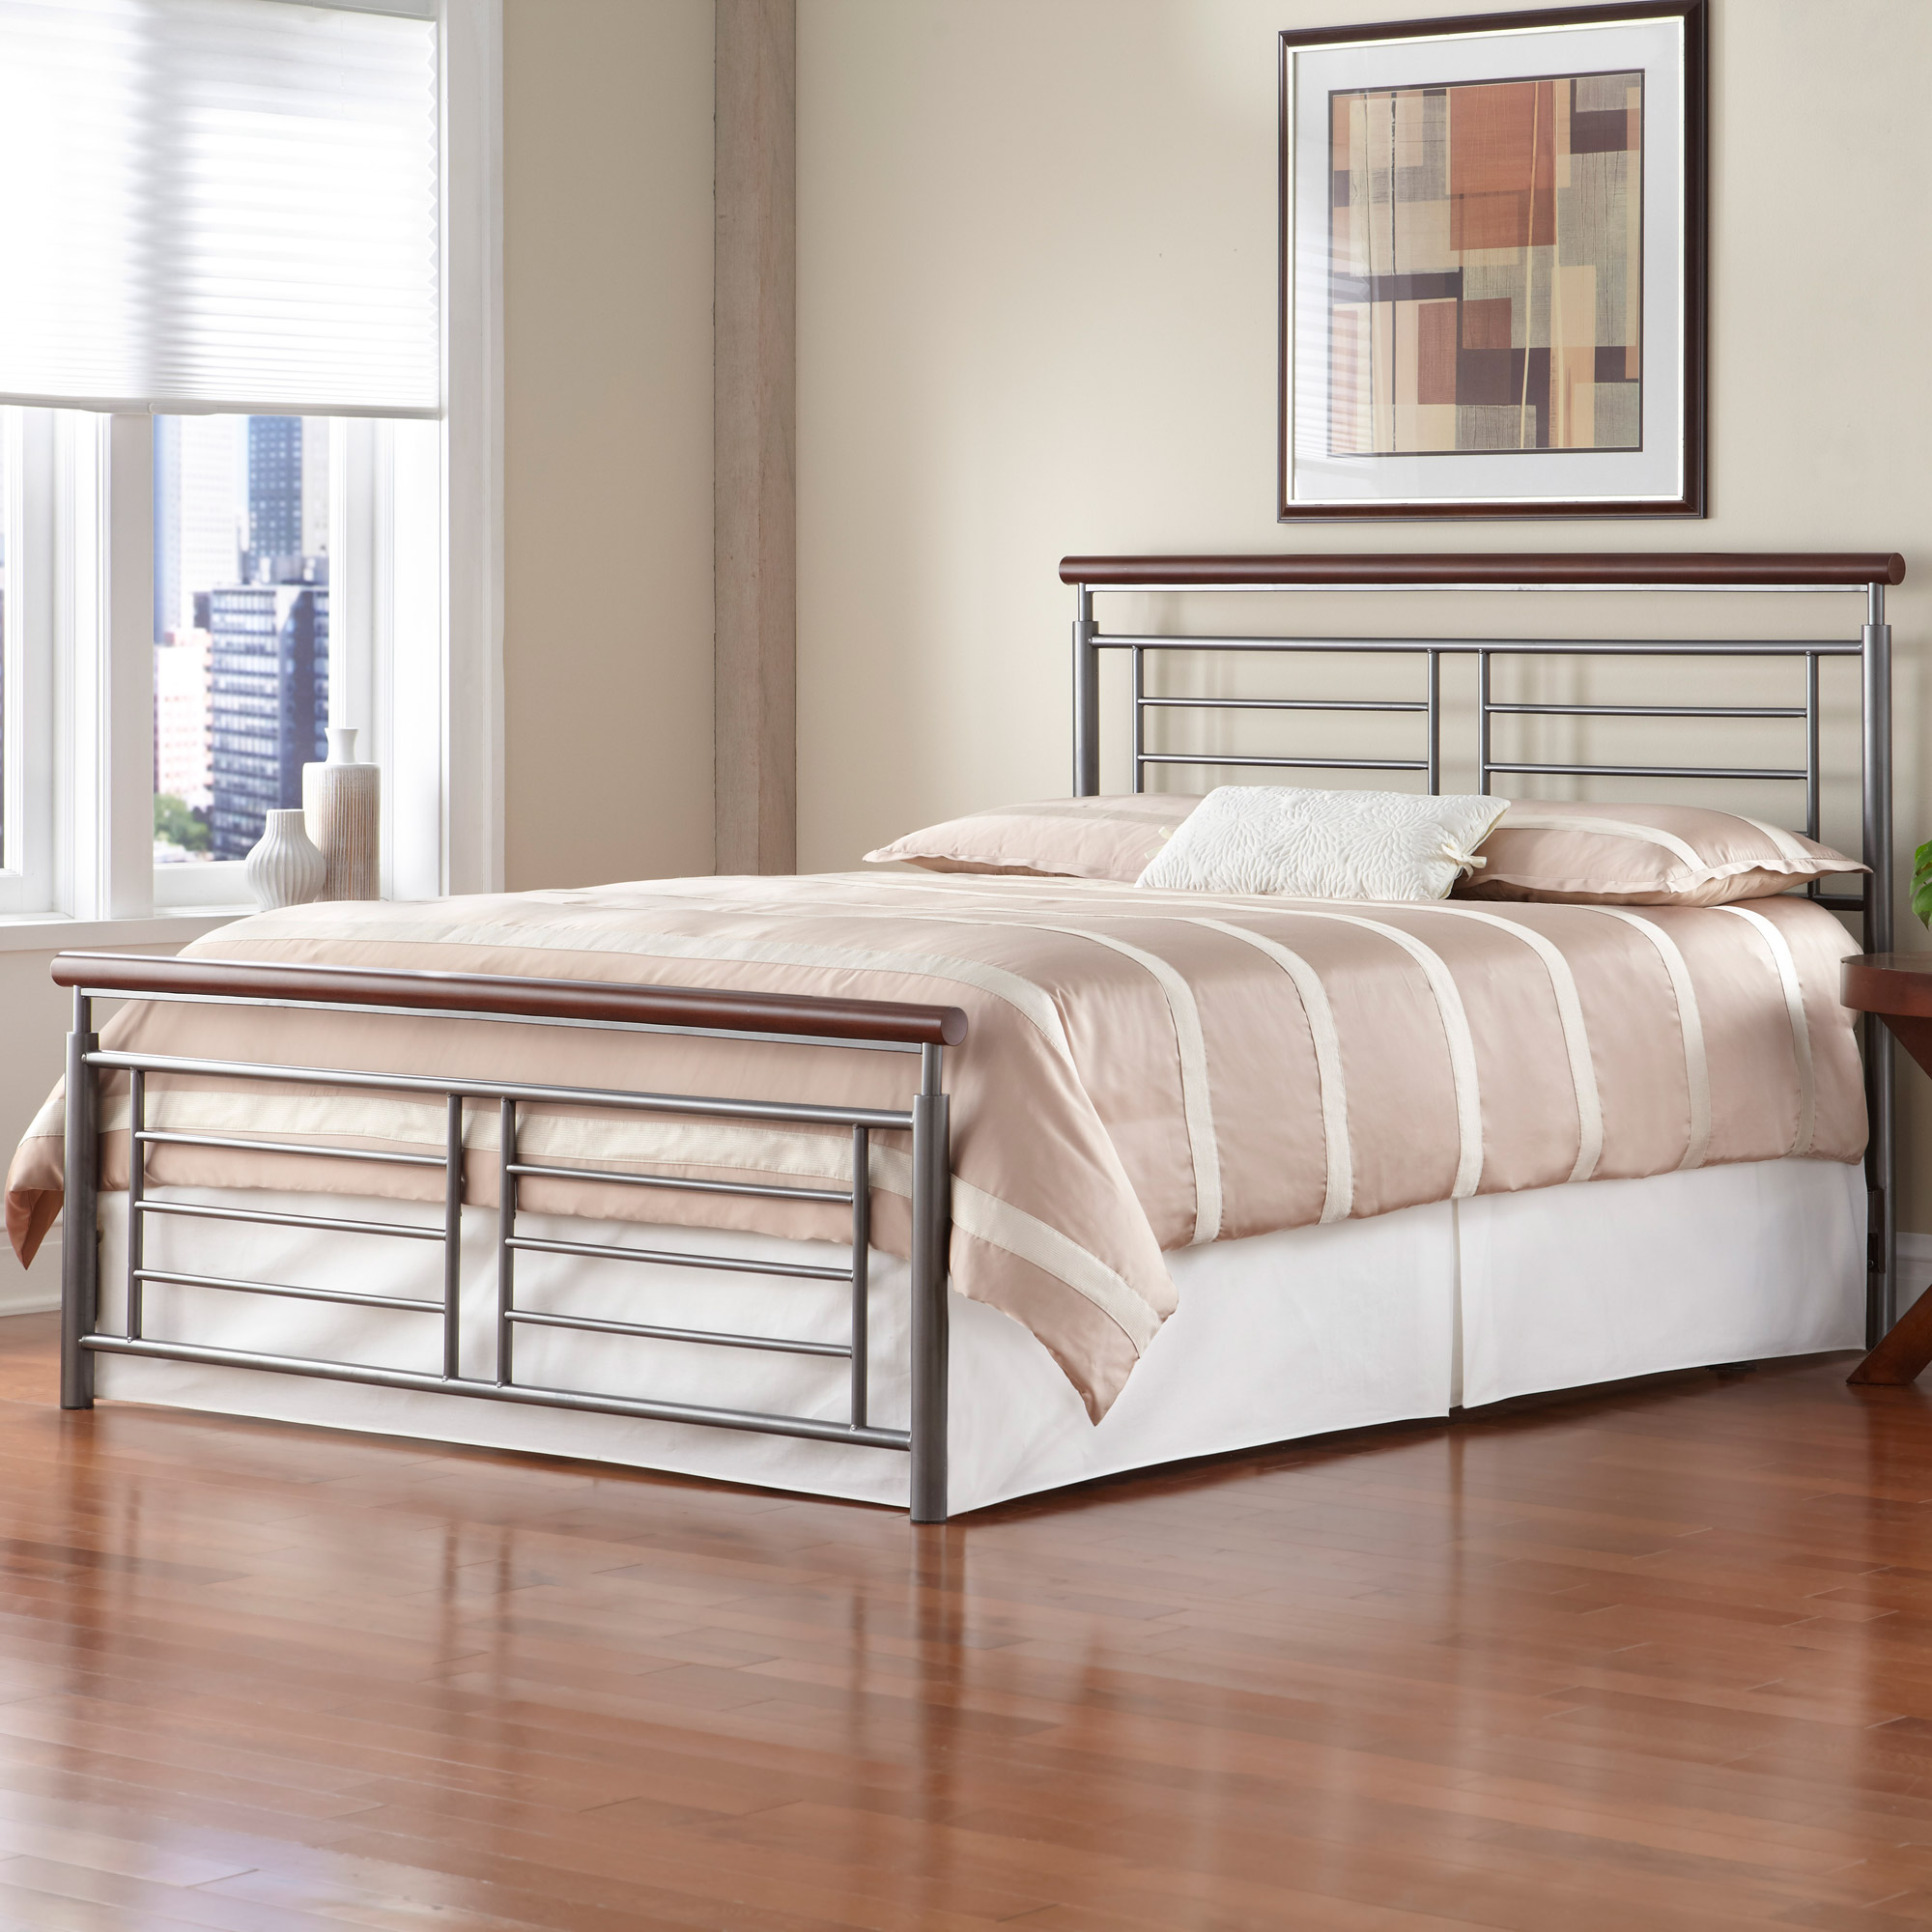 Bedroom Designs Metal Beds iron bed silver/cherry metal contemporary design